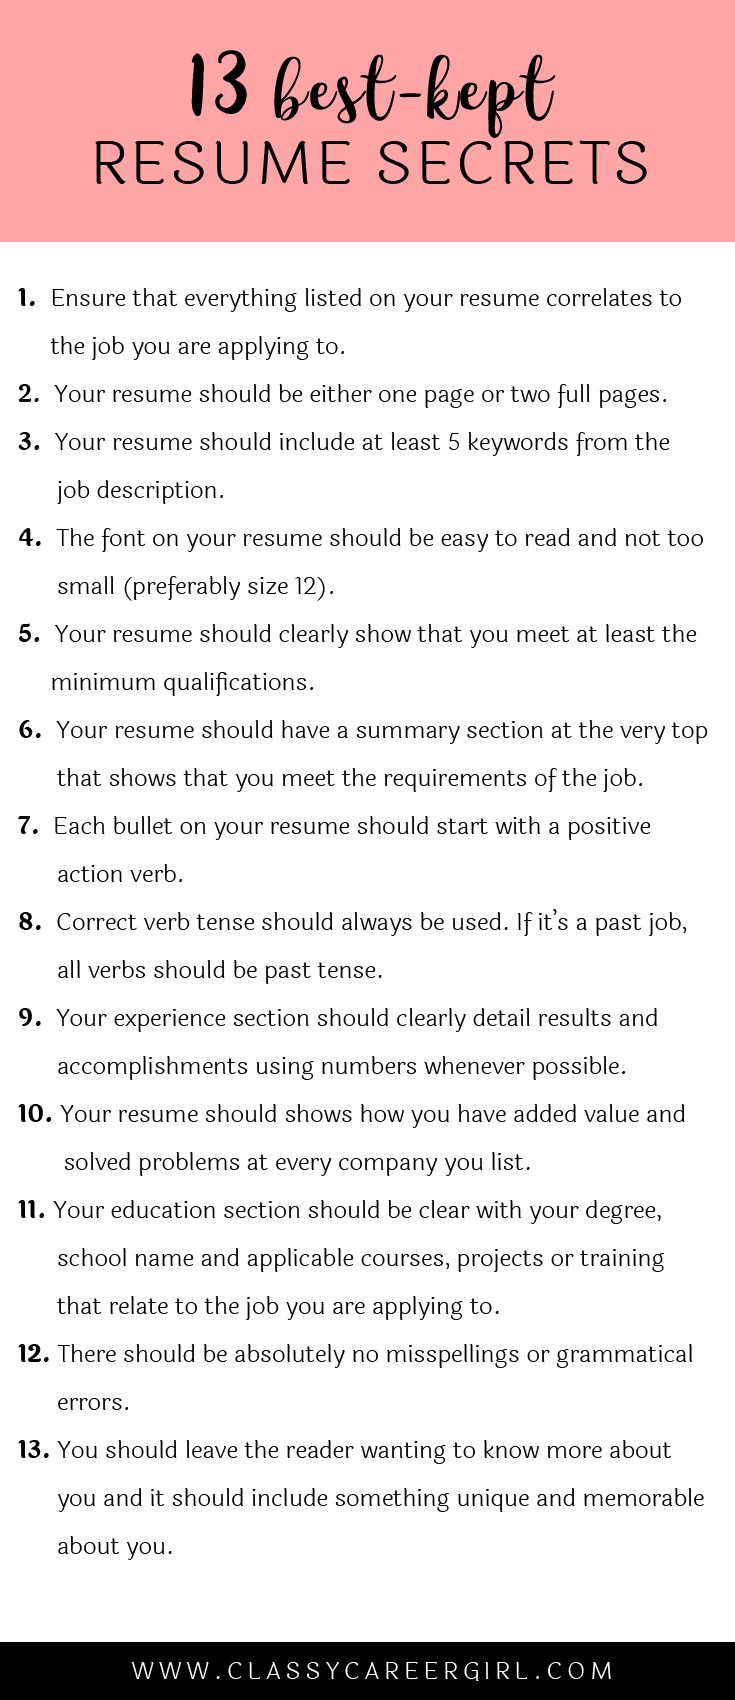 Opposenewapstandardsus  Seductive  Ideas About Resume On Pinterest  Cv Format Resume Cv And  With Hot Some Hiring Managers Will Toss Your Resume Out If You Dont Know These  With Adorable Office Skills For Resume Also Math Teacher Resume In Addition Examples Of Skills On Resume And Entry Level Administrative Assistant Resume As Well As Best Resume App Additionally Business Management Resume From Pinterestcom With Opposenewapstandardsus  Hot  Ideas About Resume On Pinterest  Cv Format Resume Cv And  With Adorable Some Hiring Managers Will Toss Your Resume Out If You Dont Know These  And Seductive Office Skills For Resume Also Math Teacher Resume In Addition Examples Of Skills On Resume From Pinterestcom